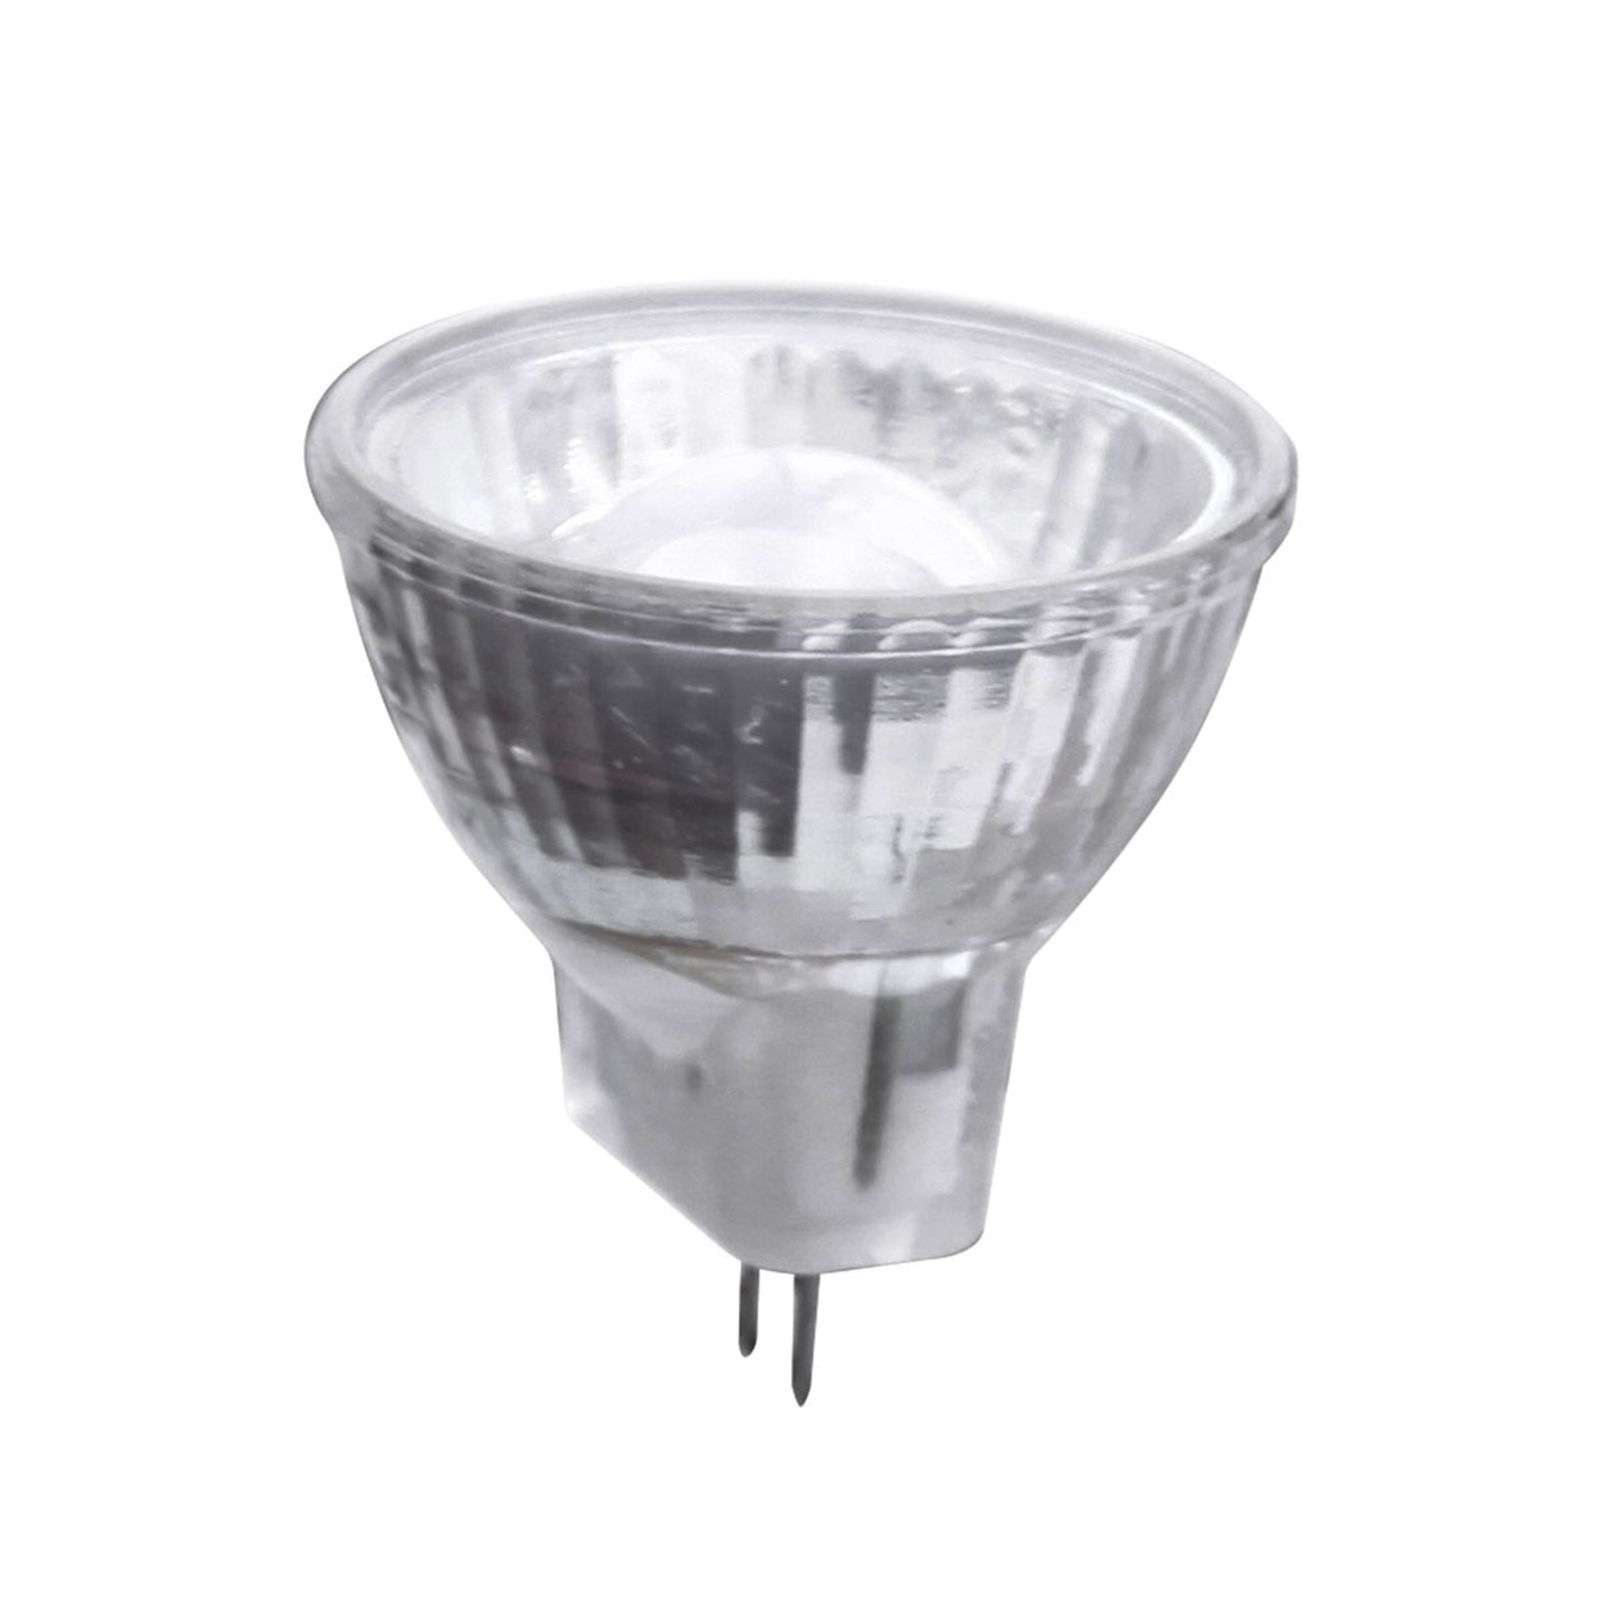 GU4 MR11 1,7 W LED a riflettore con lente